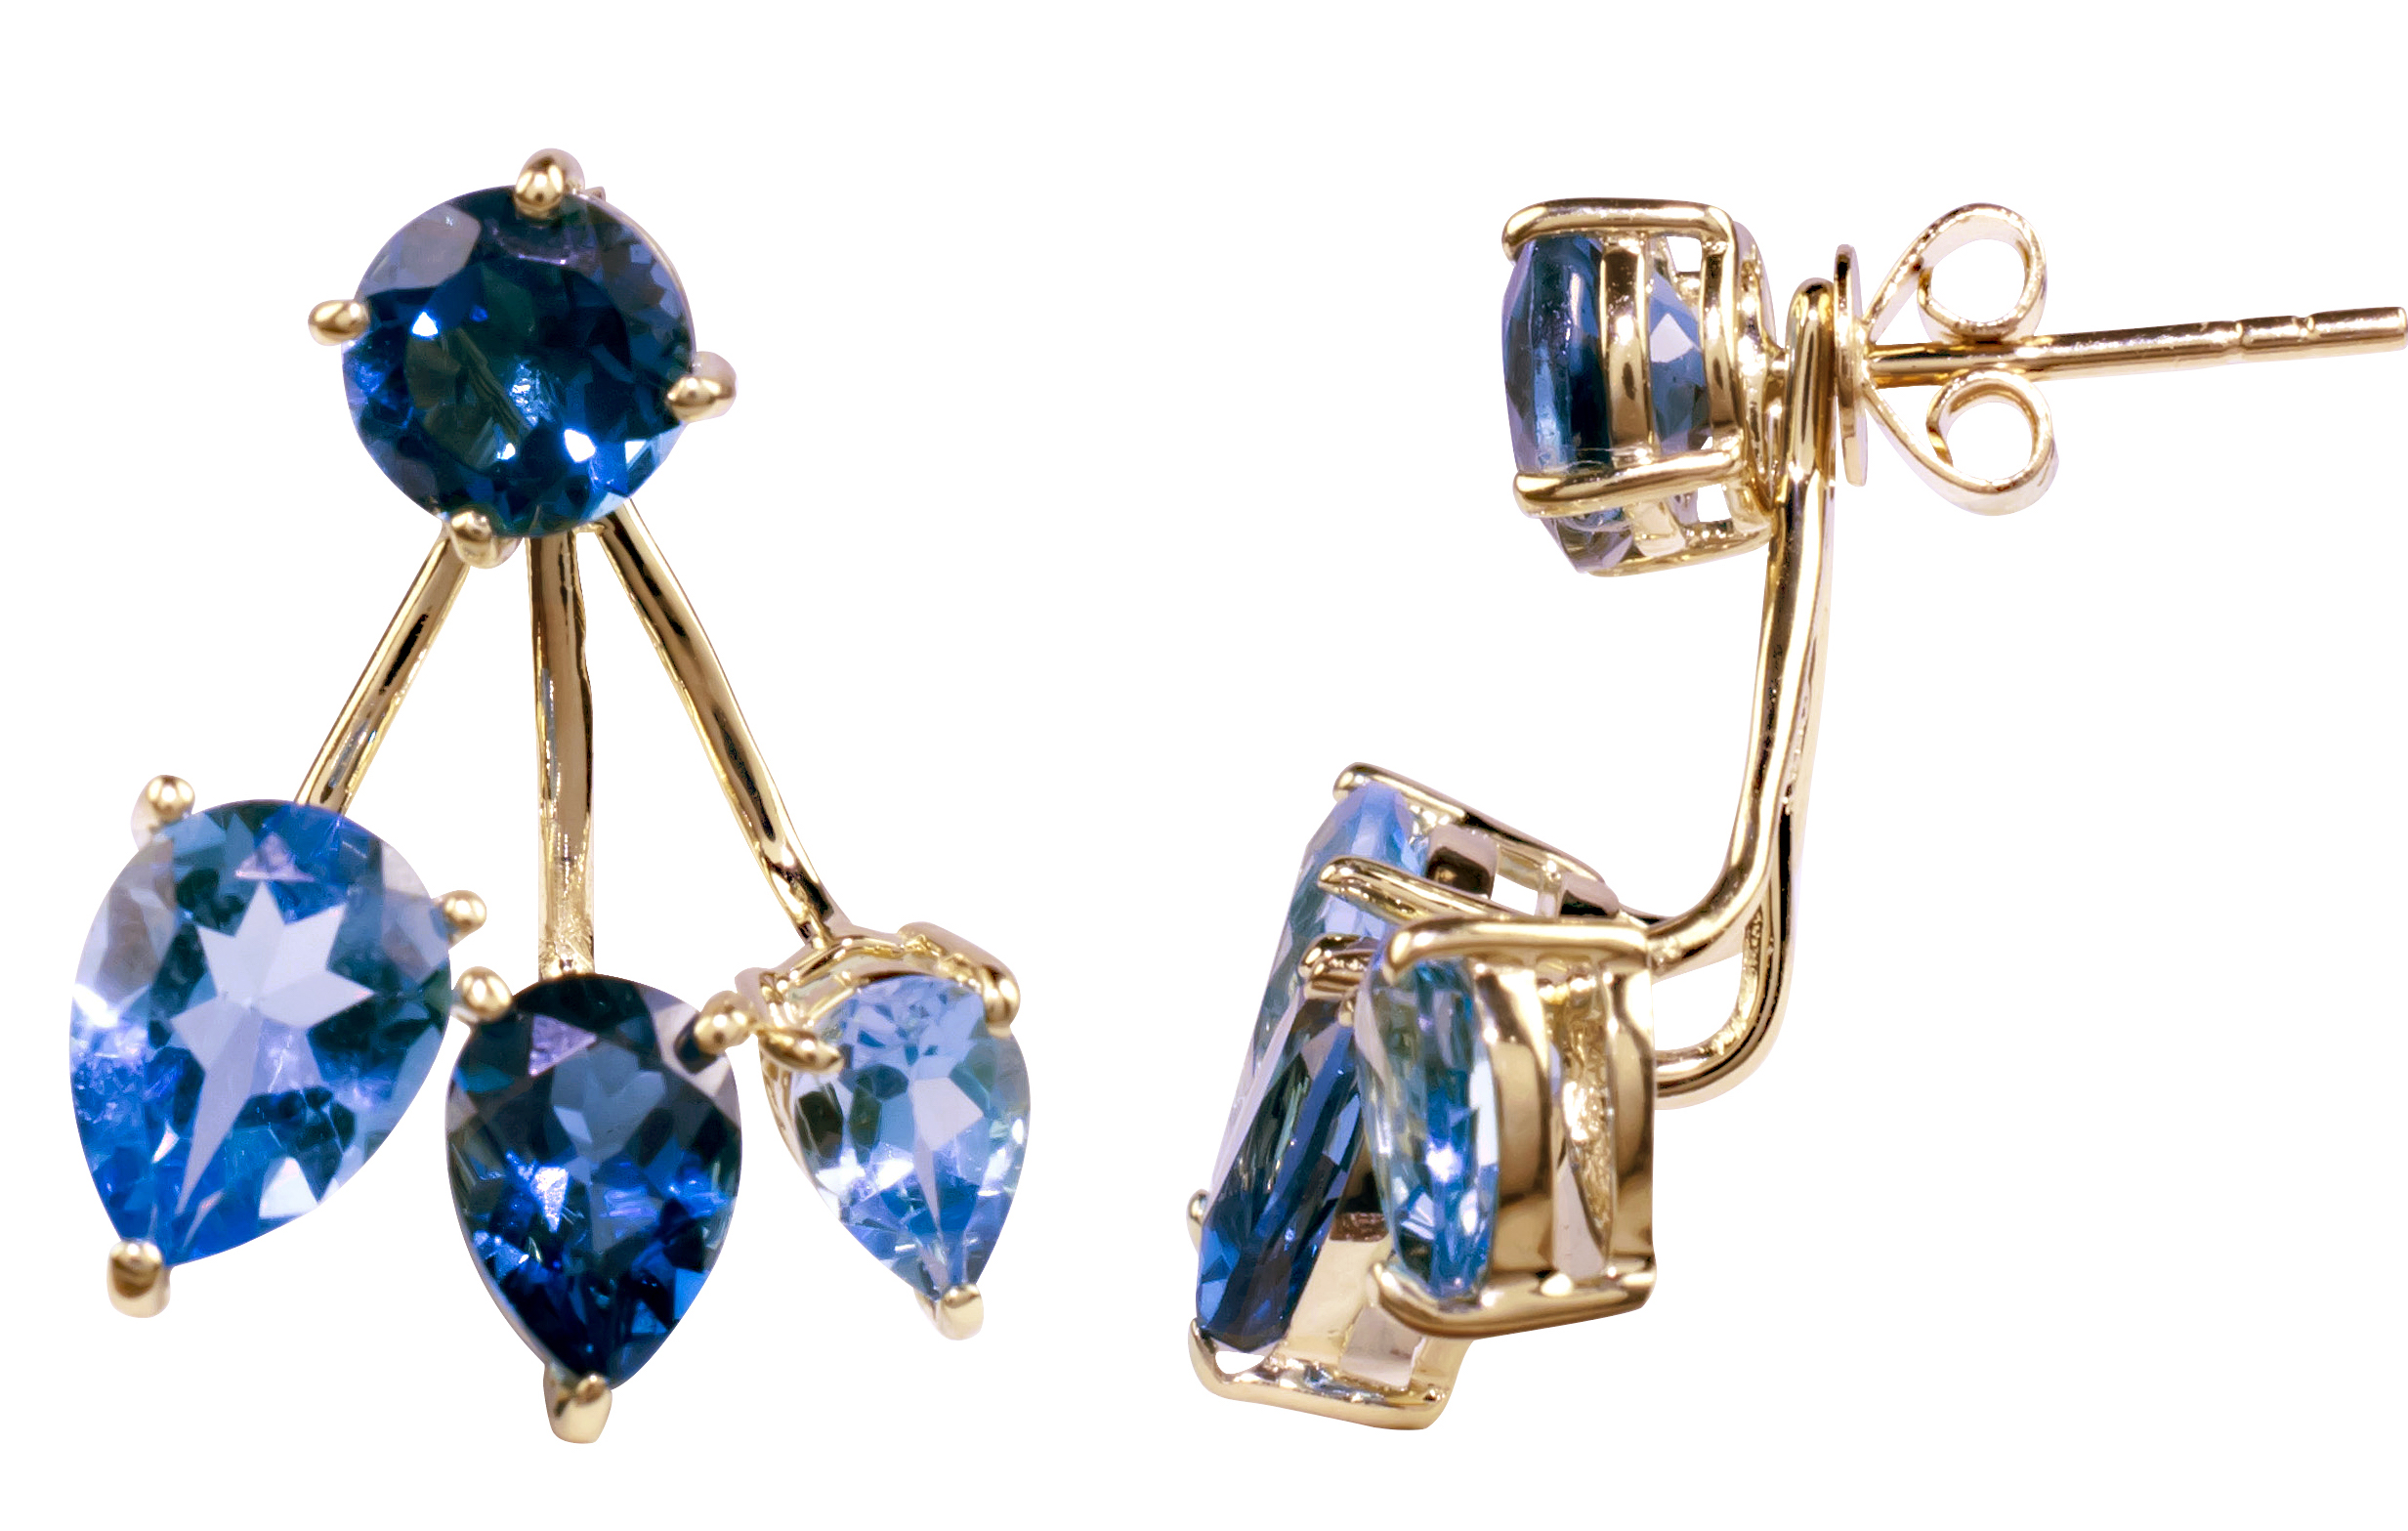 JewelMak blue topaz earrings | JCK On Your Market